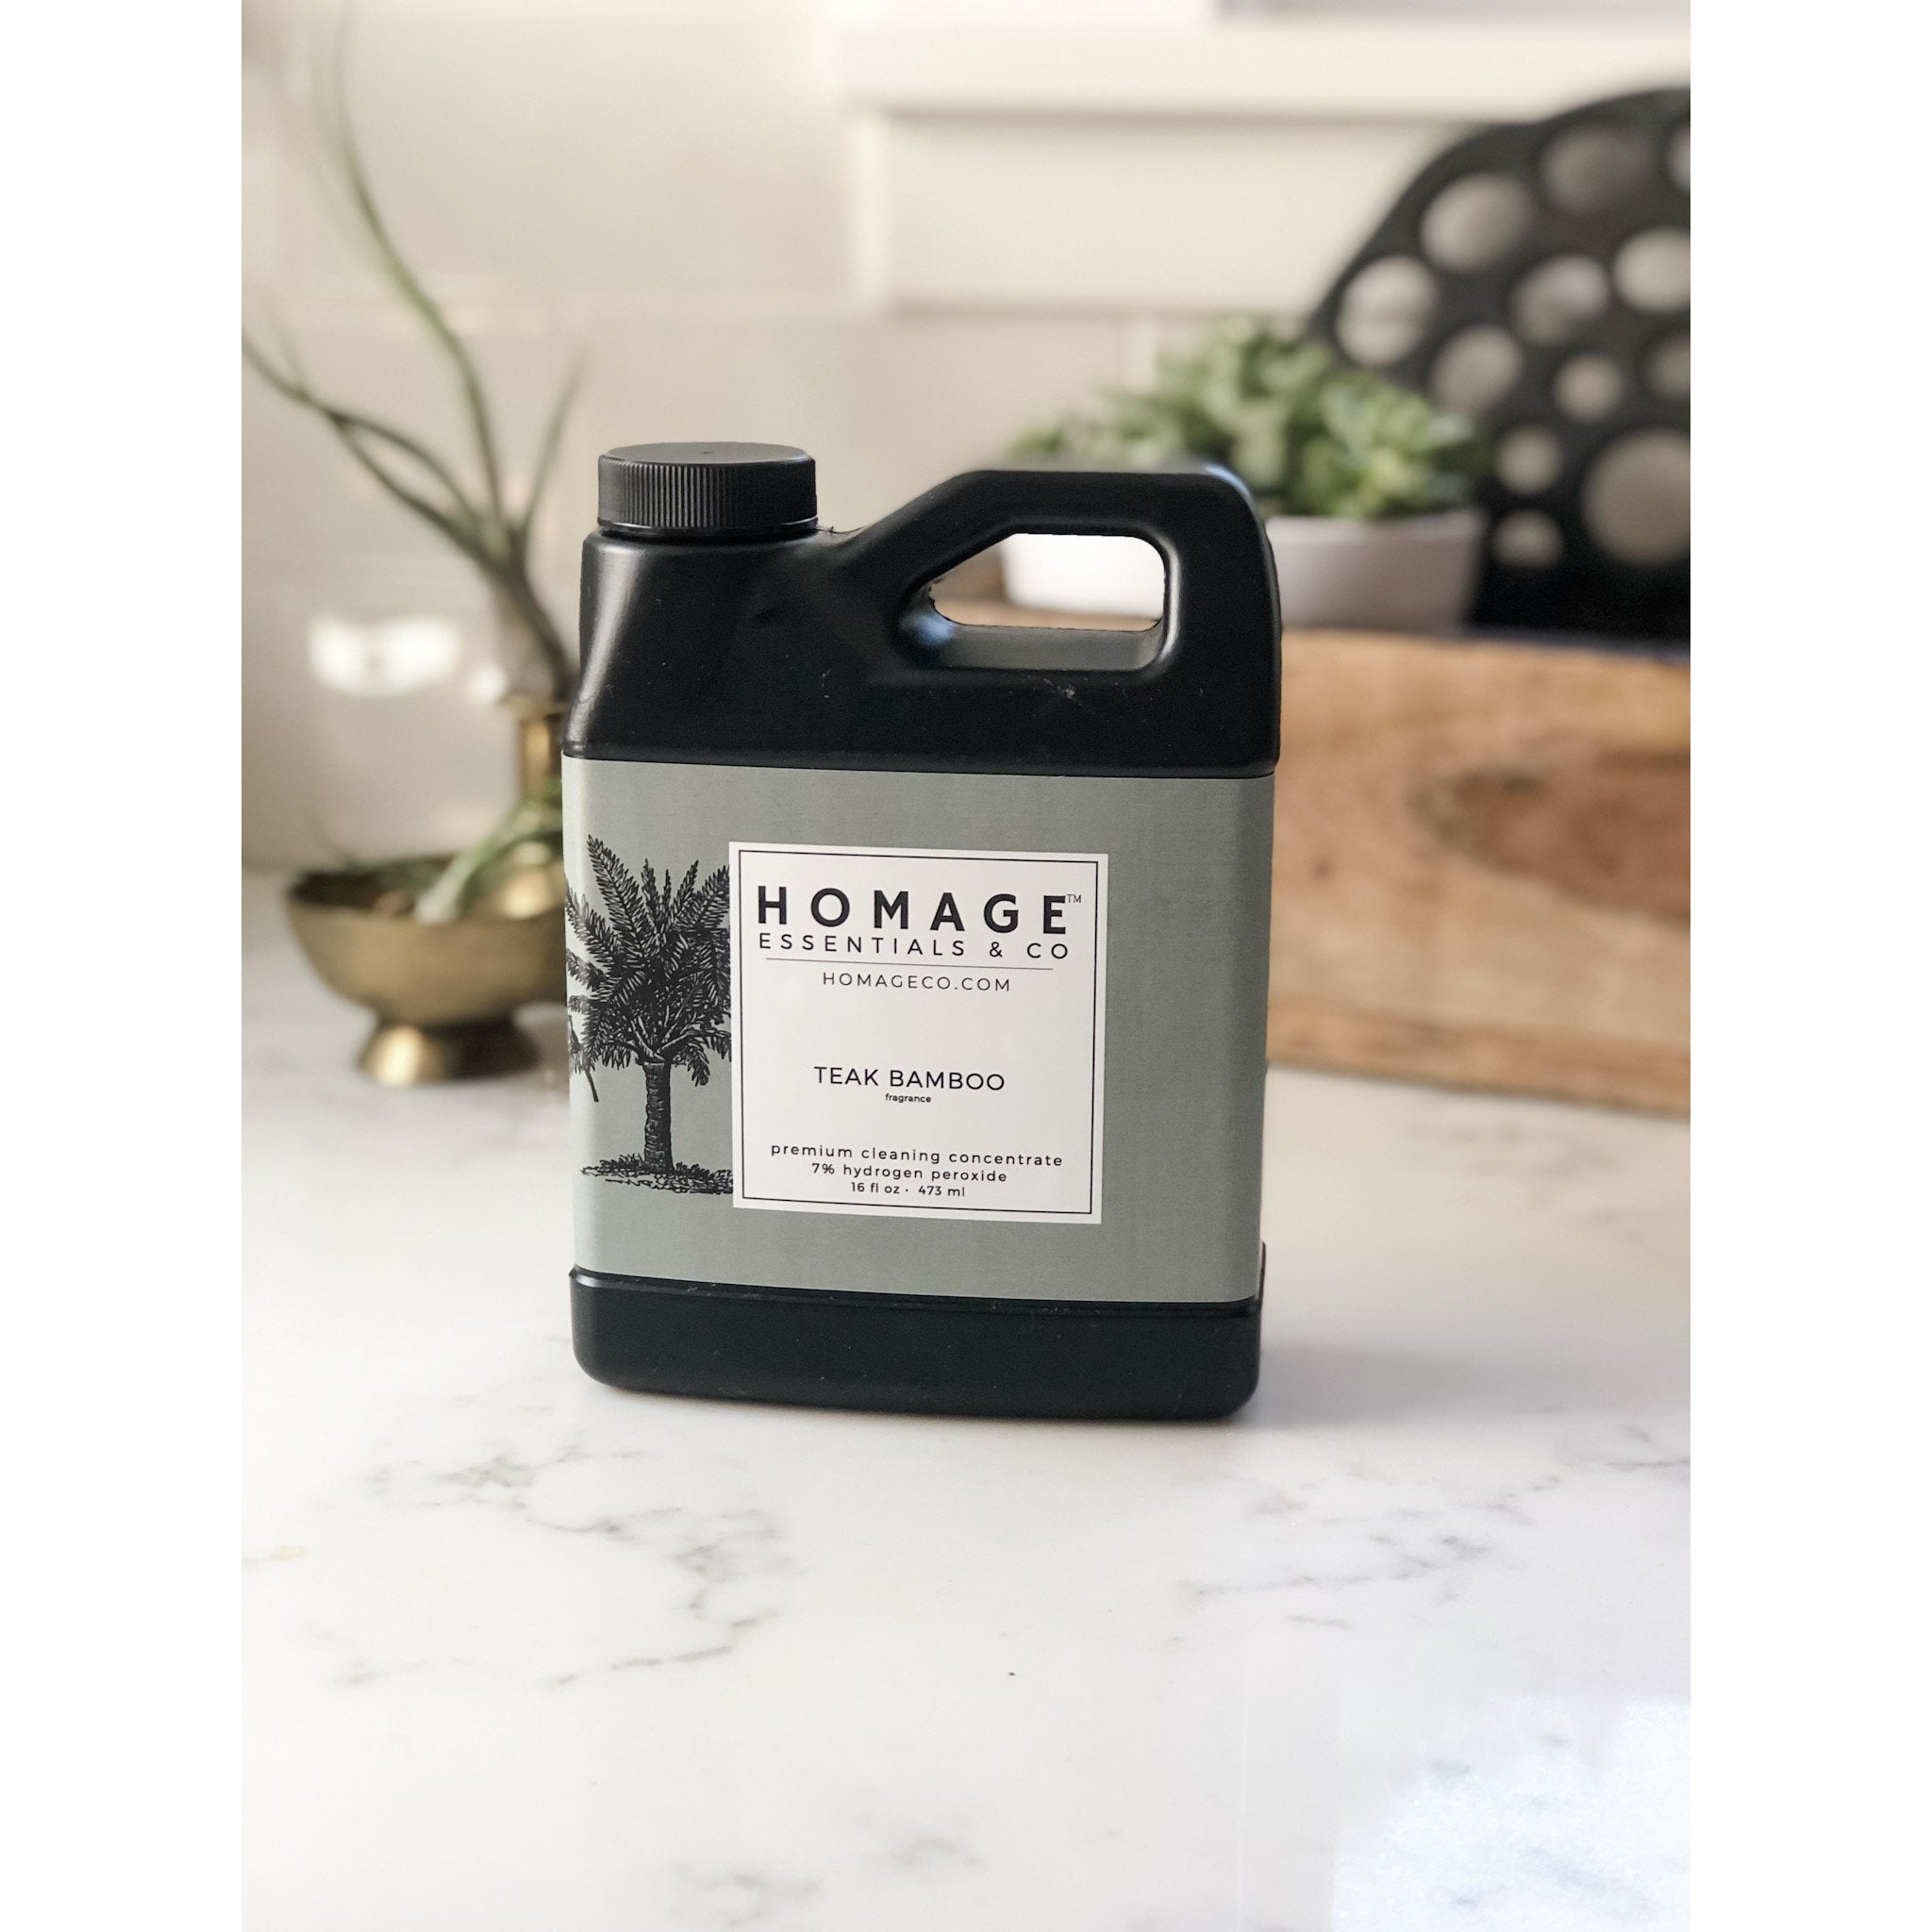 Back to School Cleaning Collection - Homage Essentials & Co